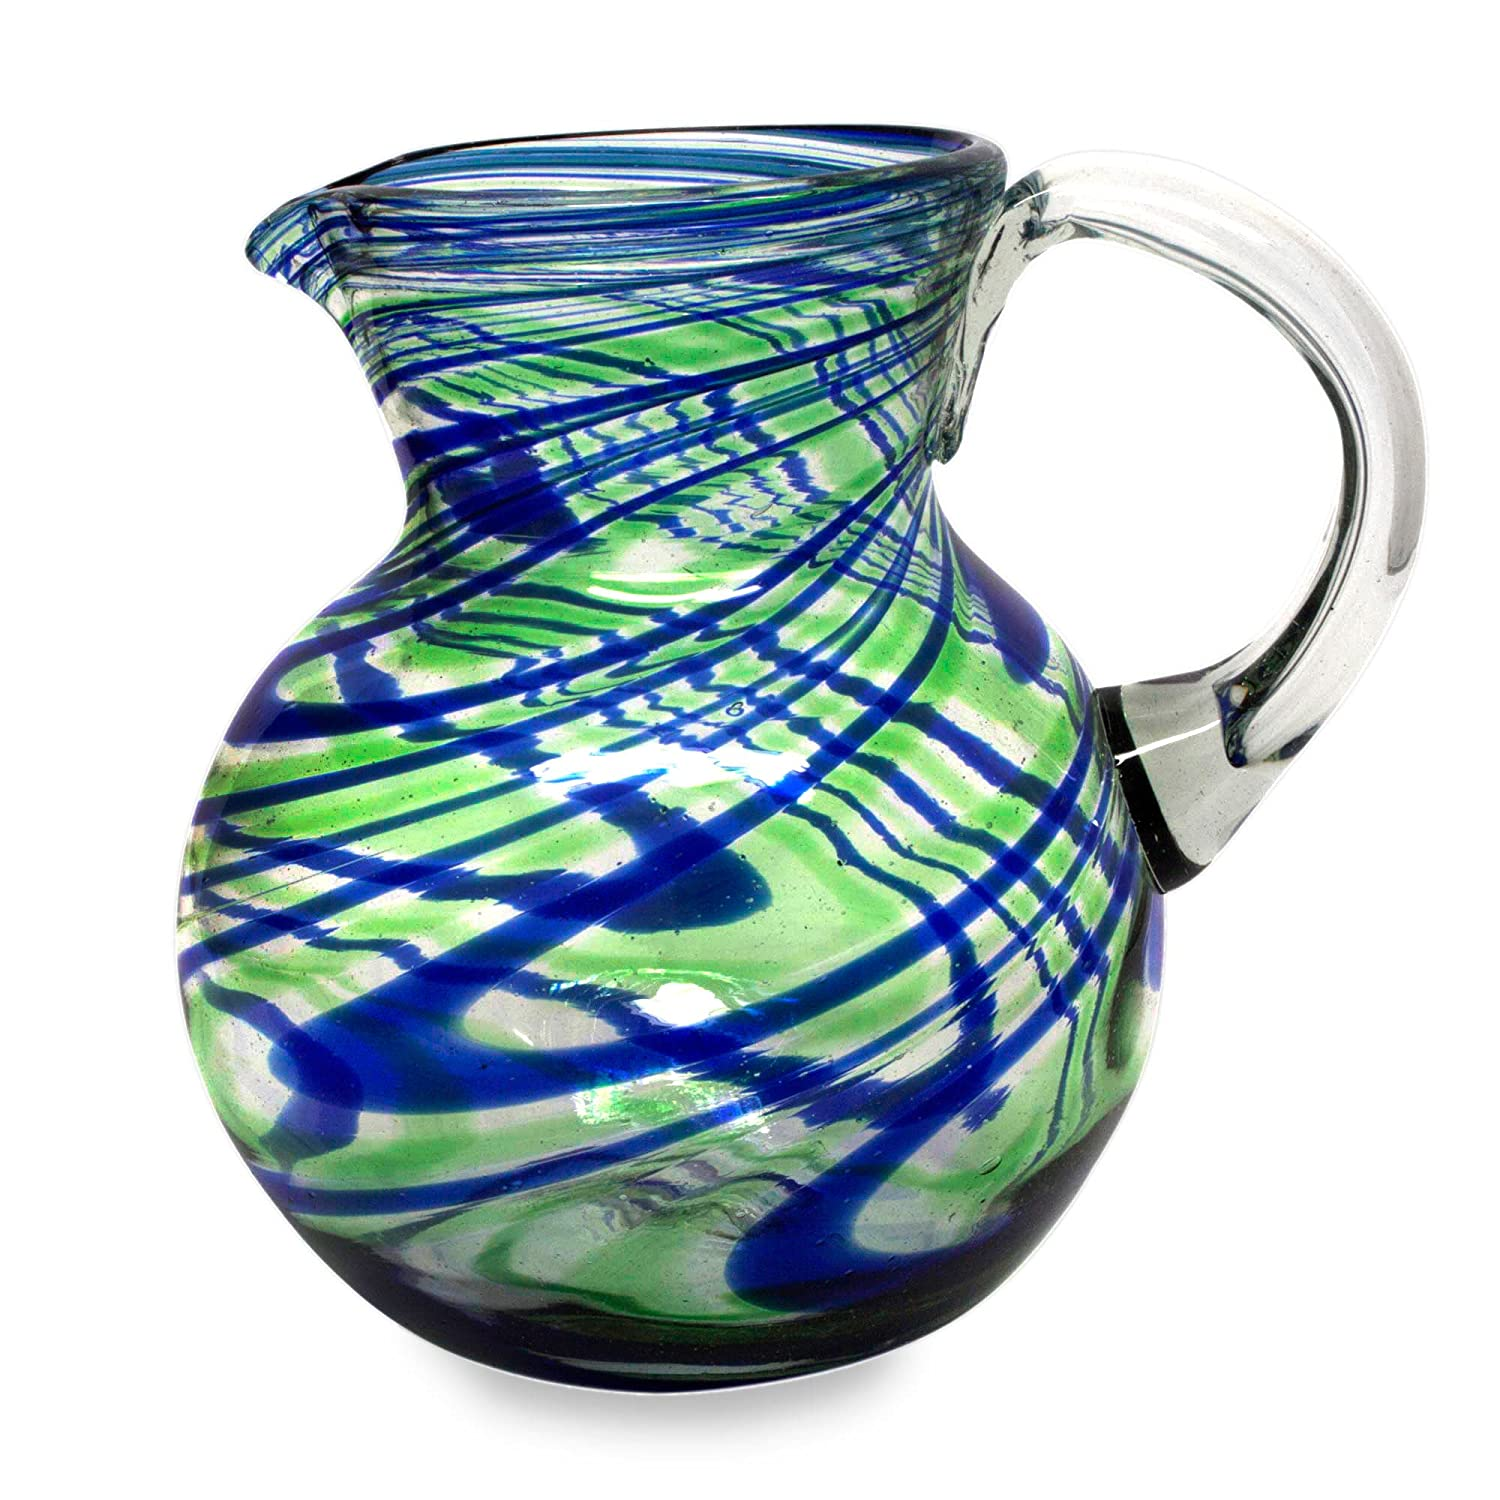 NOVICA Blue Green Hand Blown Glass Pitcher, 84 oz, Elegant Energy' Elegant Energy' 228948